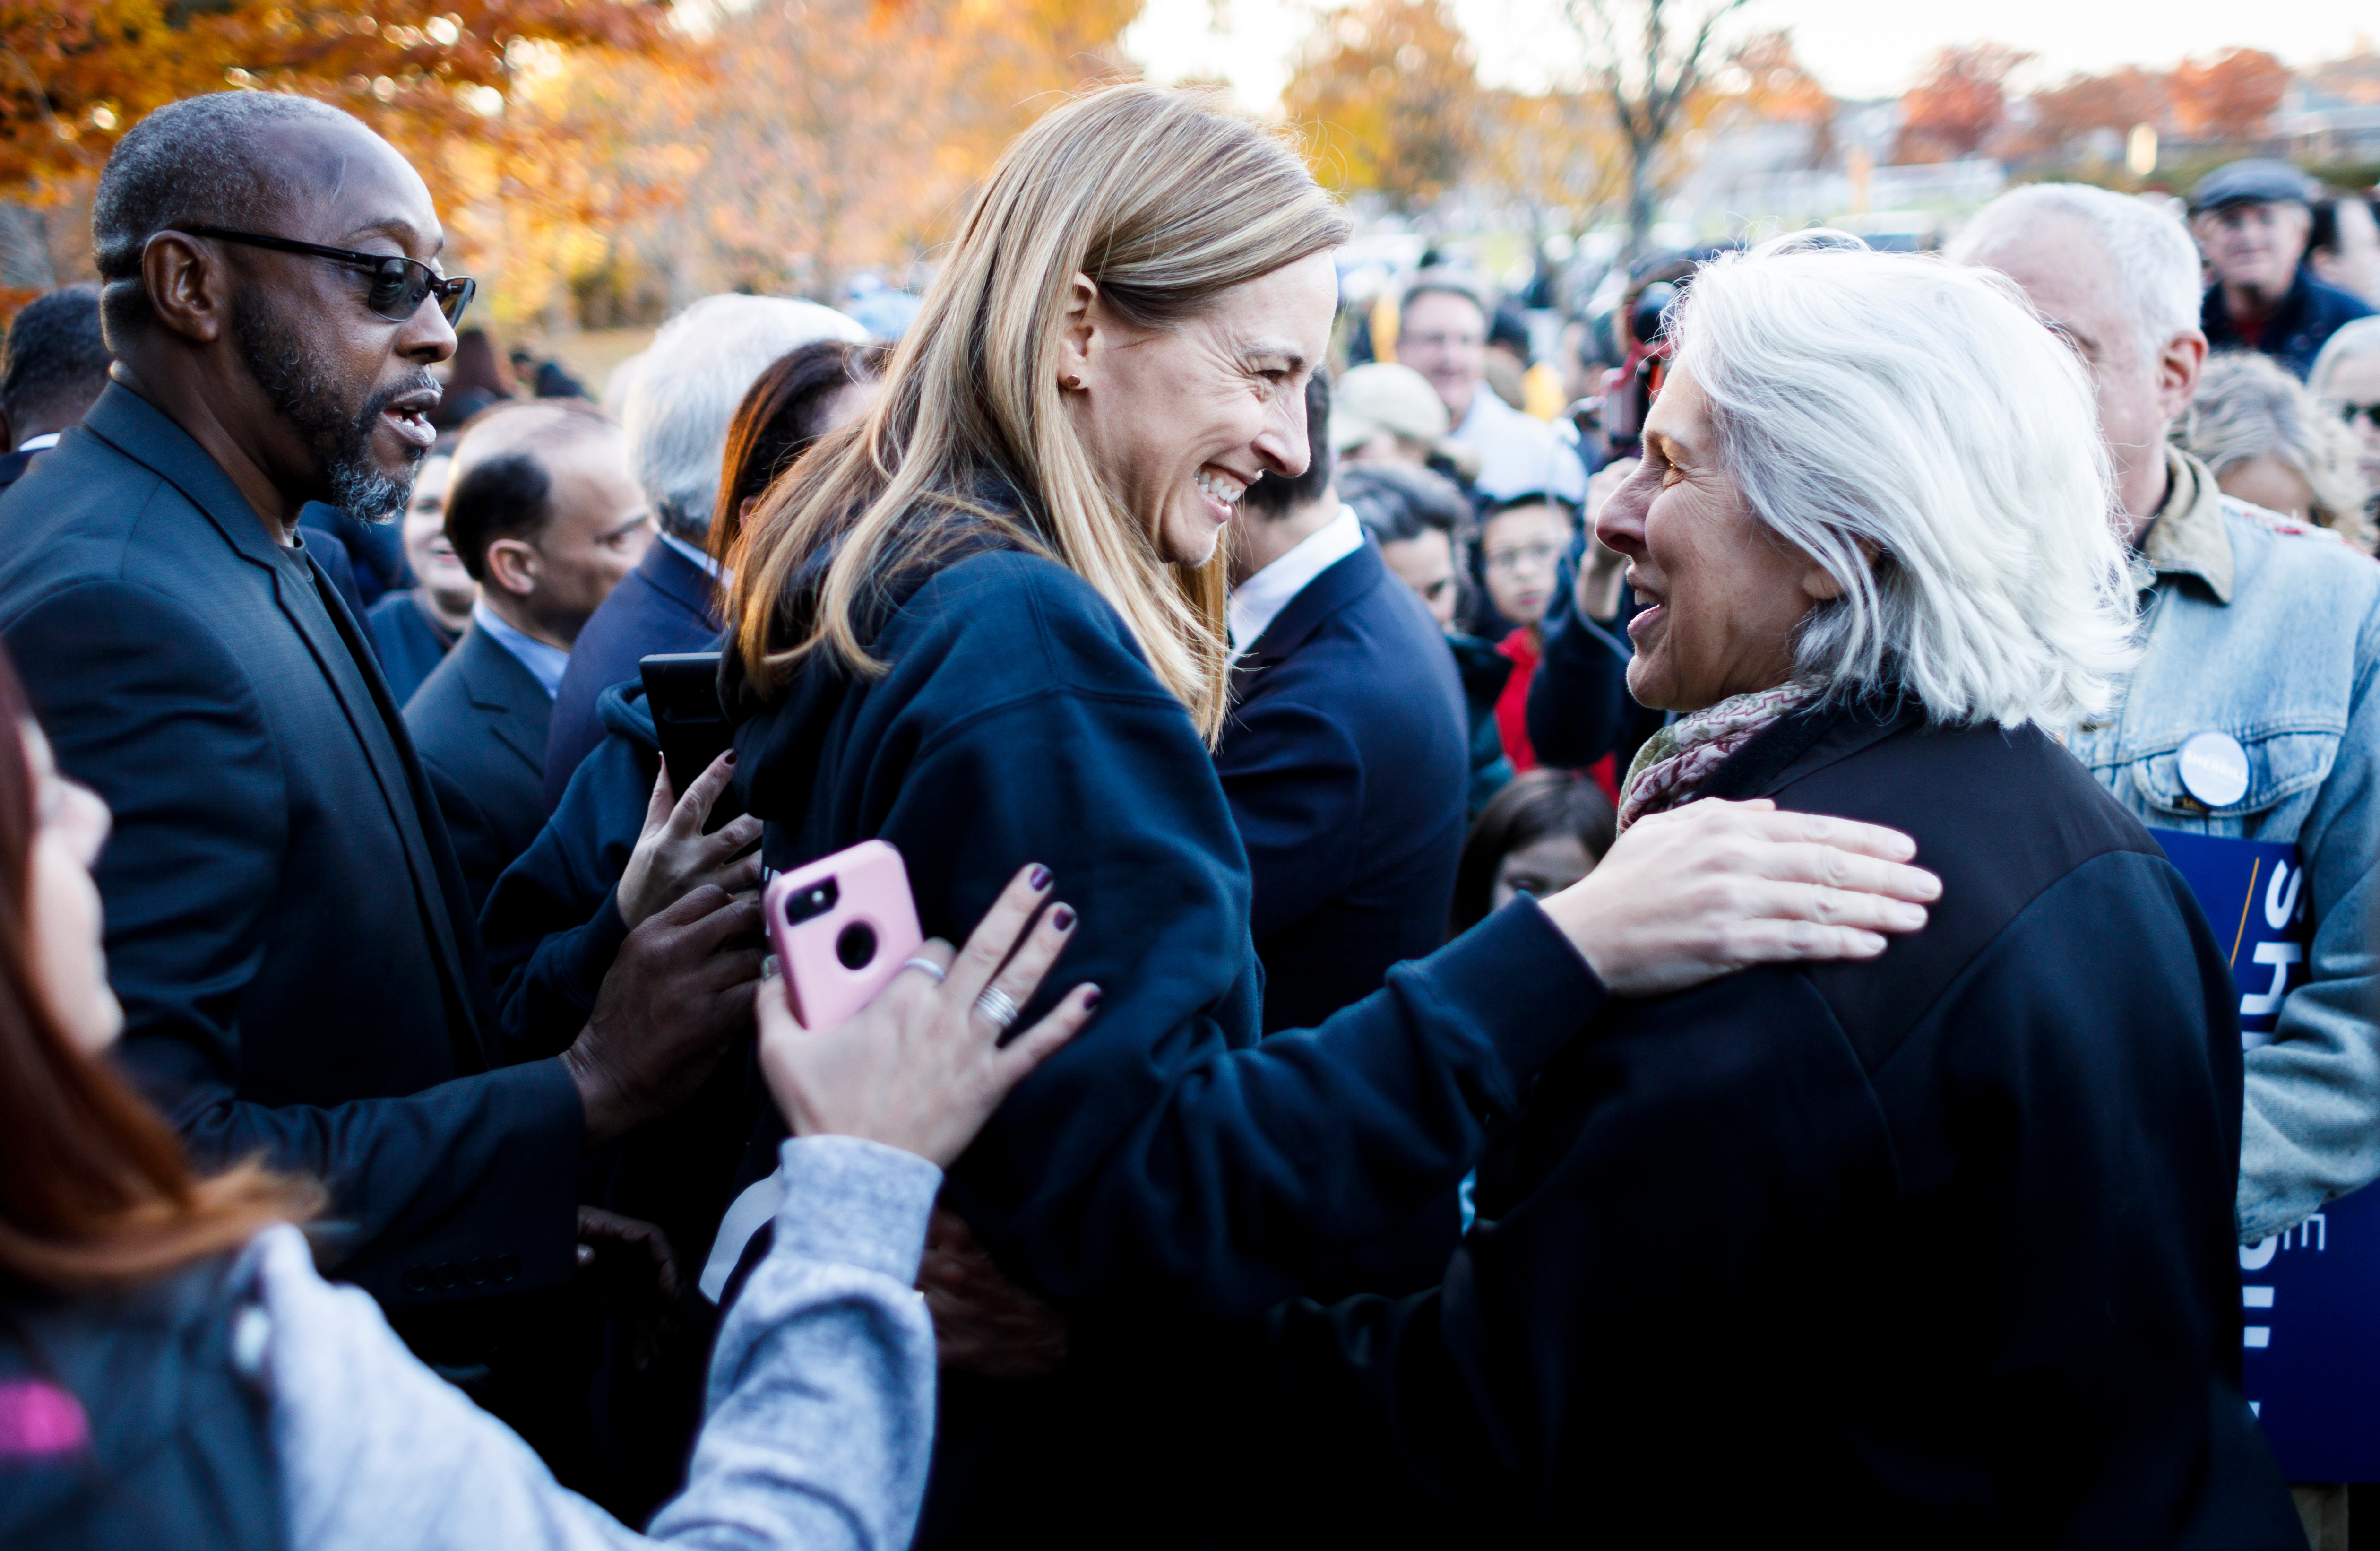 Democratic congressional candidate Mikie Sherrill, who is running to represent New Jersey's 11th district, talks with supporters during a get-out-the-vote rally in Livingston, New Jersey, on Nov. 4, 2018. Sherrill is a Naval Academy graduate and a former Navy helicopter pilot.